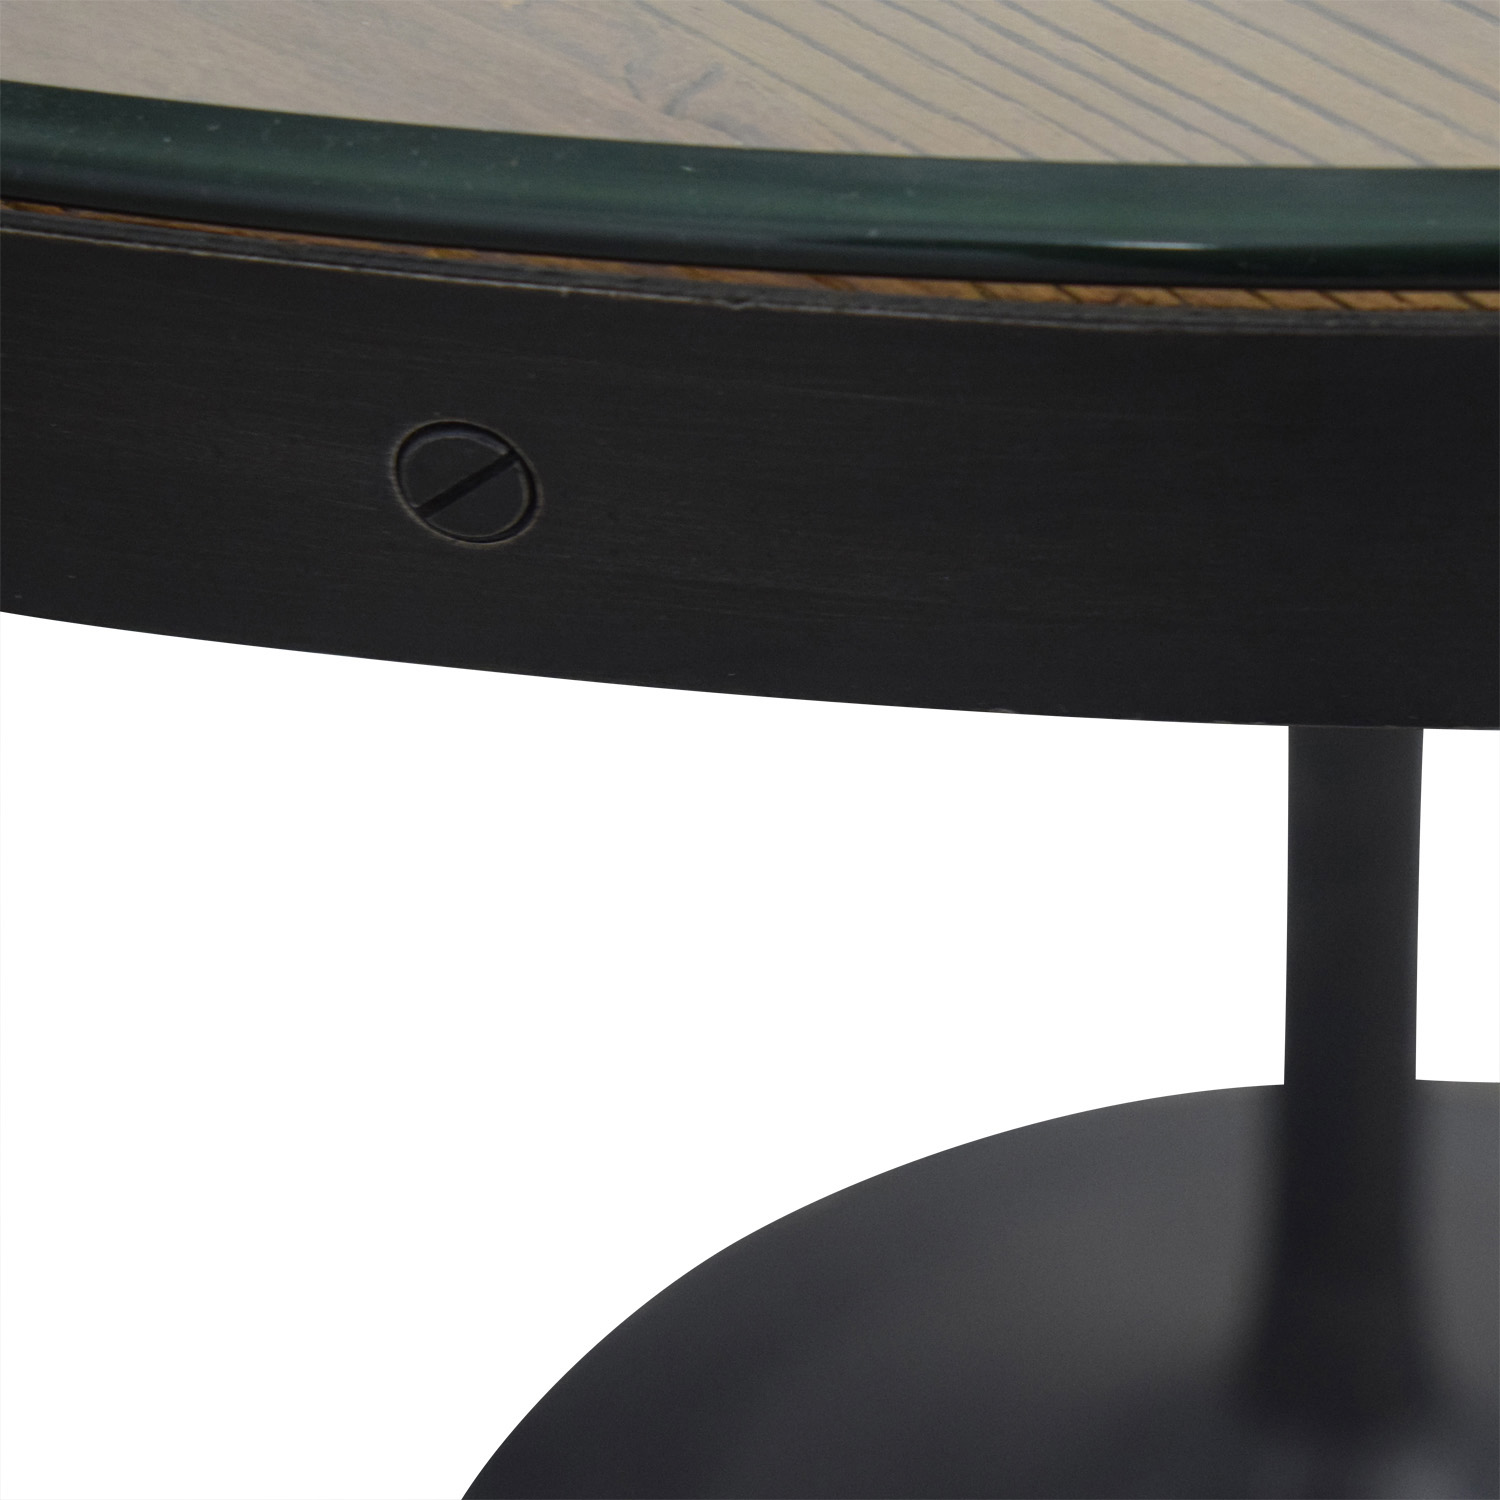 Restoration Hardware Restoration Hardware Aero Round Dining Table coupon